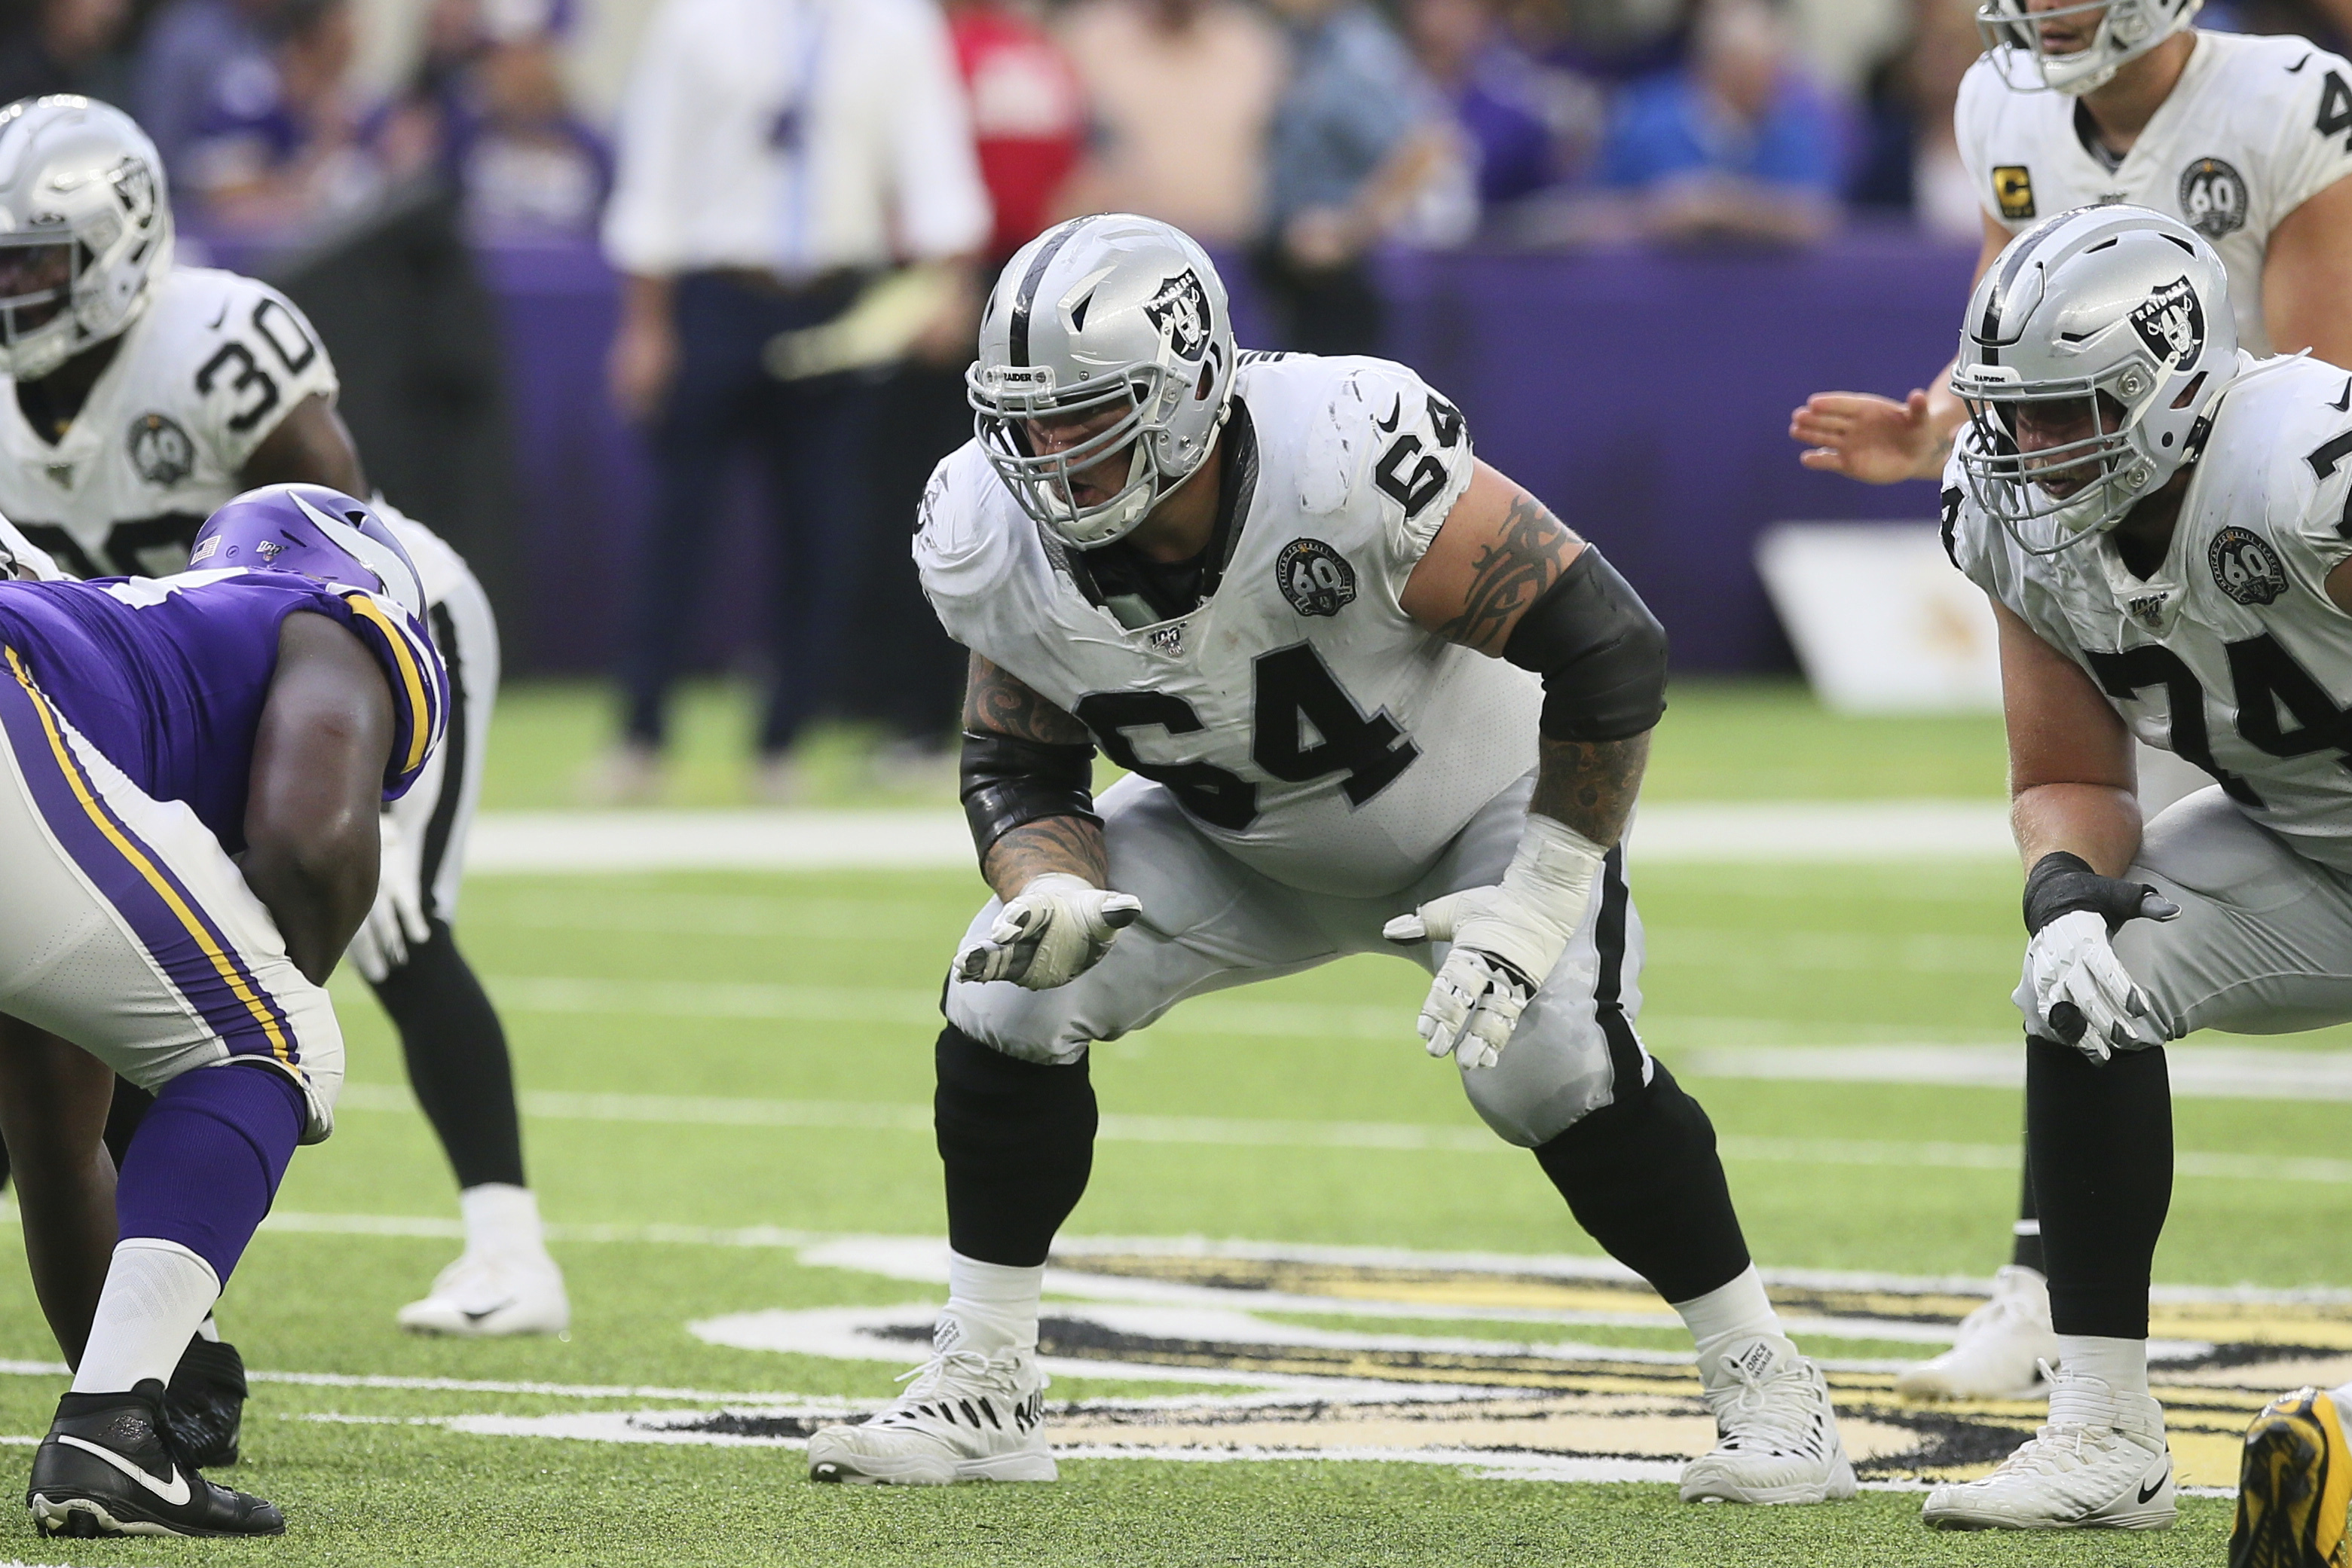 NFL rumors: N.J.'s Richie Incognito up to same old (dirty) tricks in Raiders' upset win over Bears in London